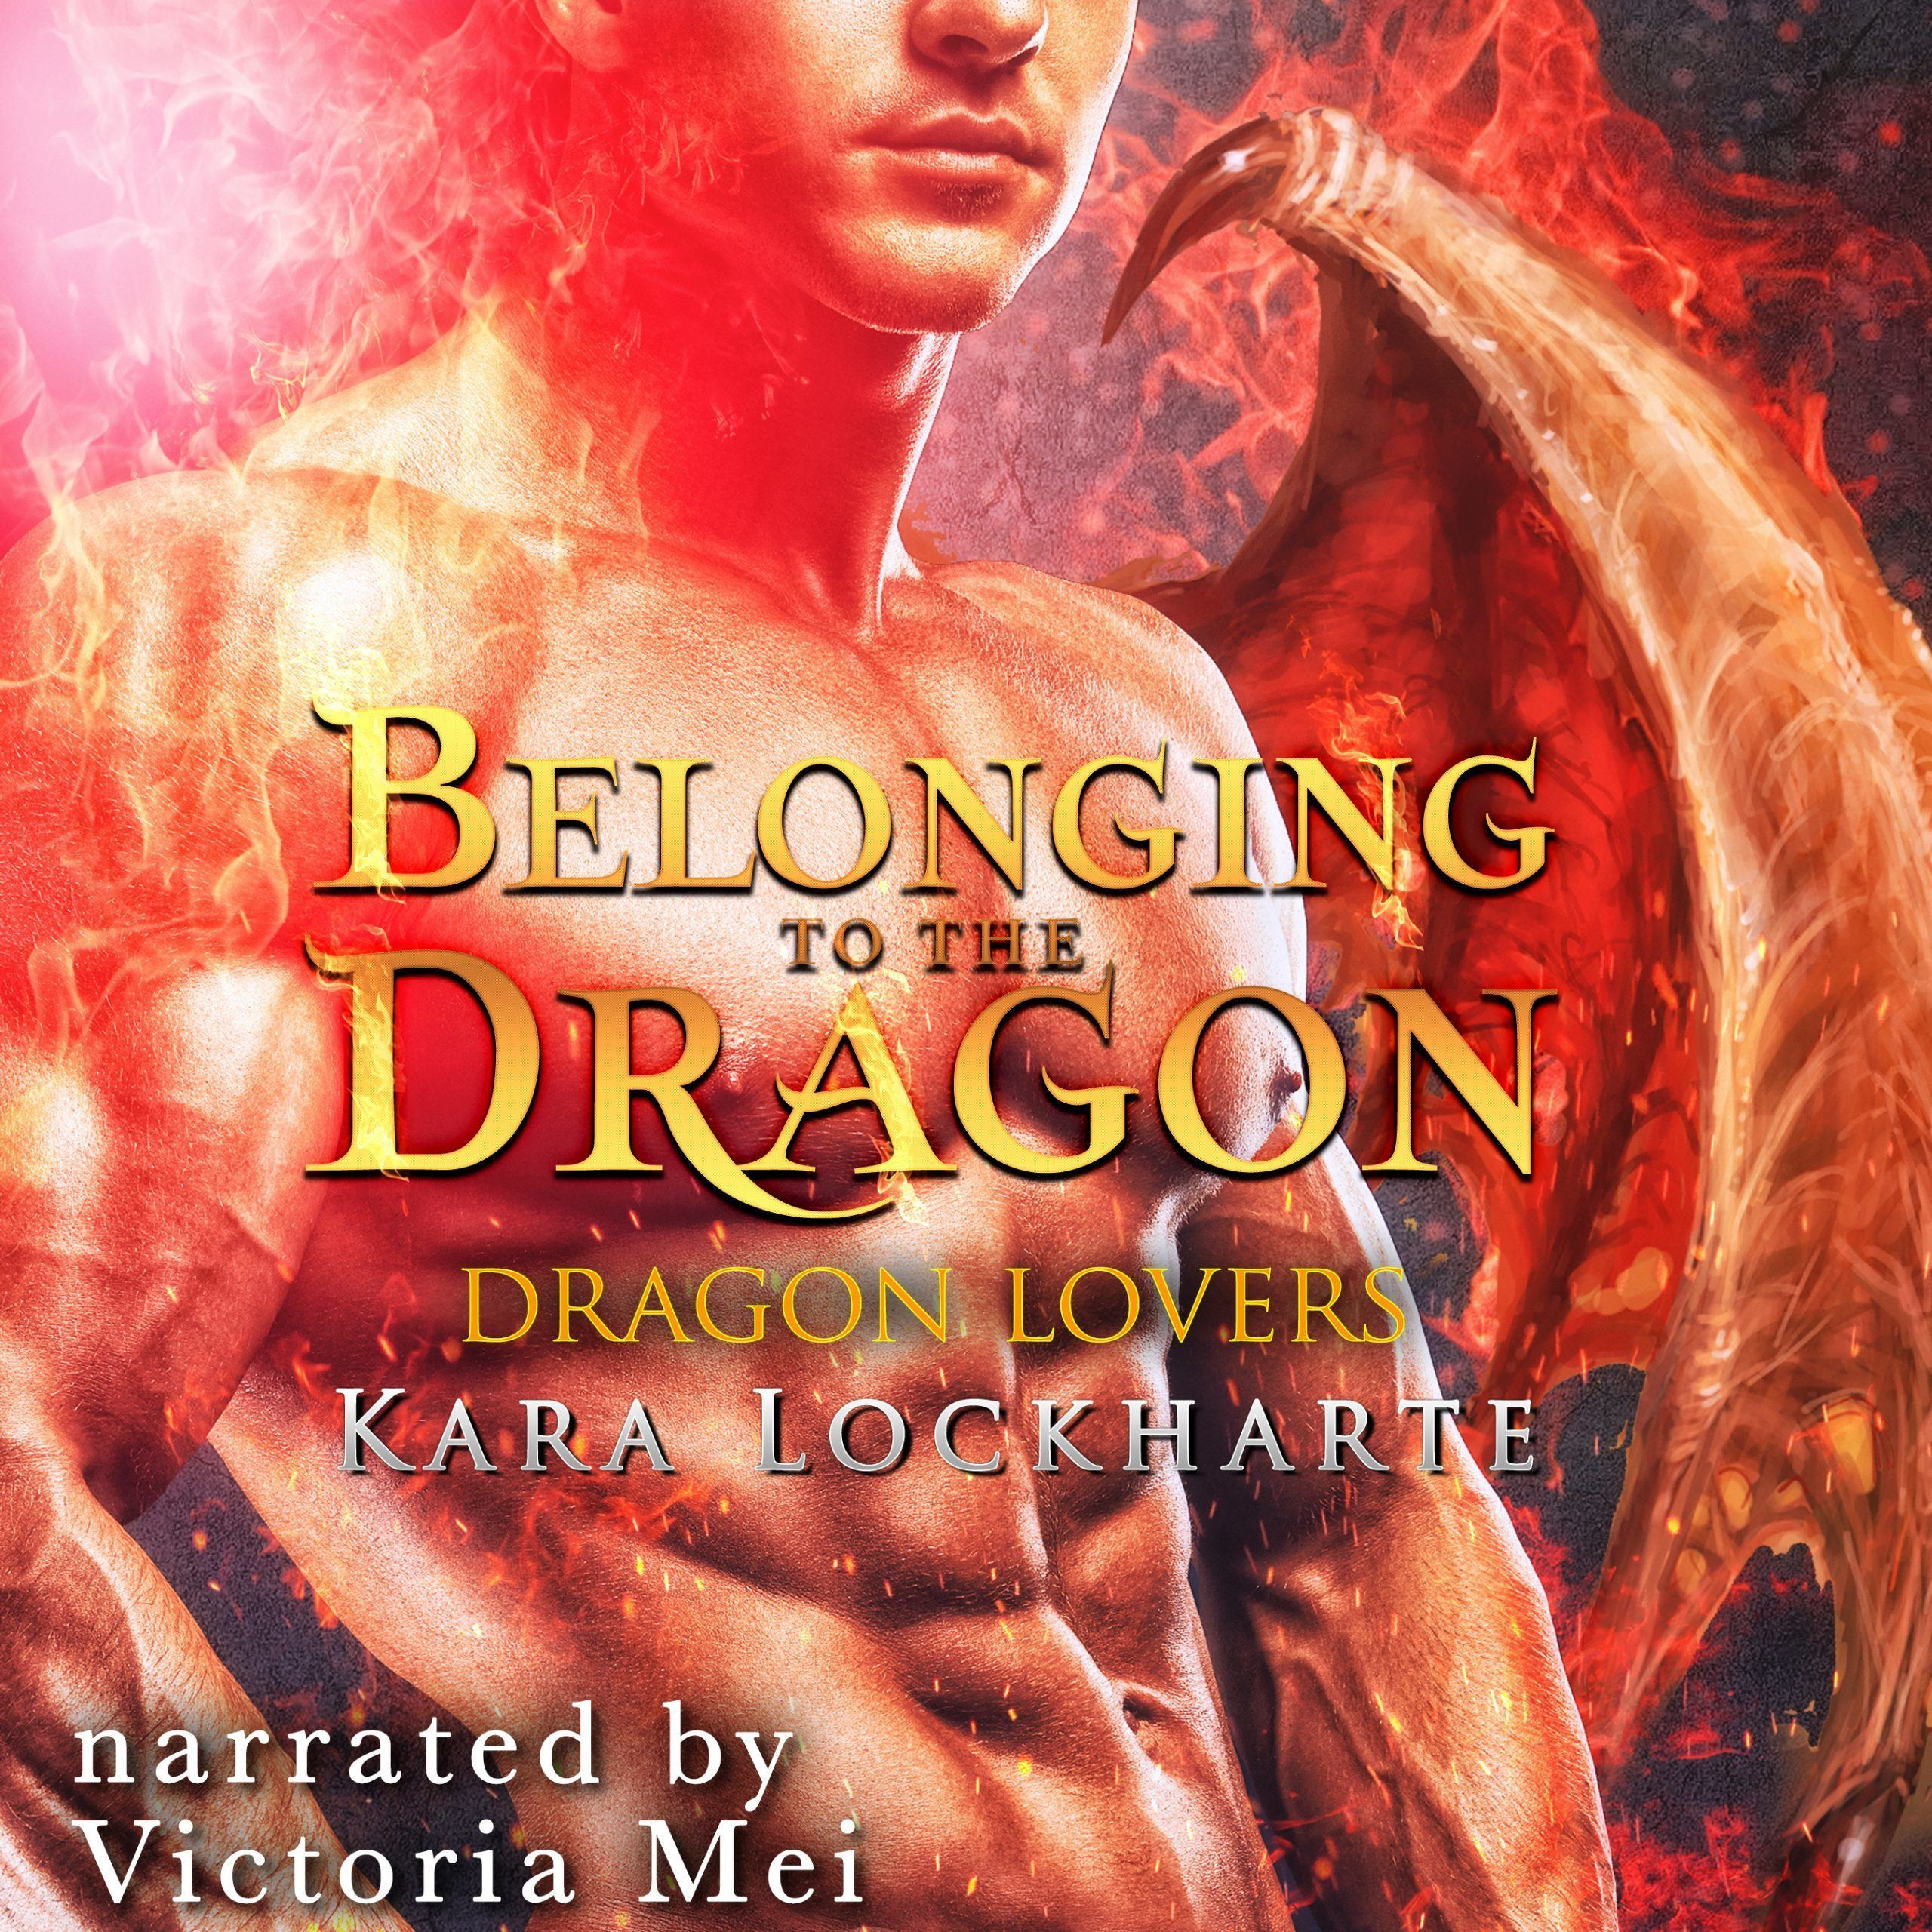 Belonging to the Dragon by Kara Lockharte Audiobook